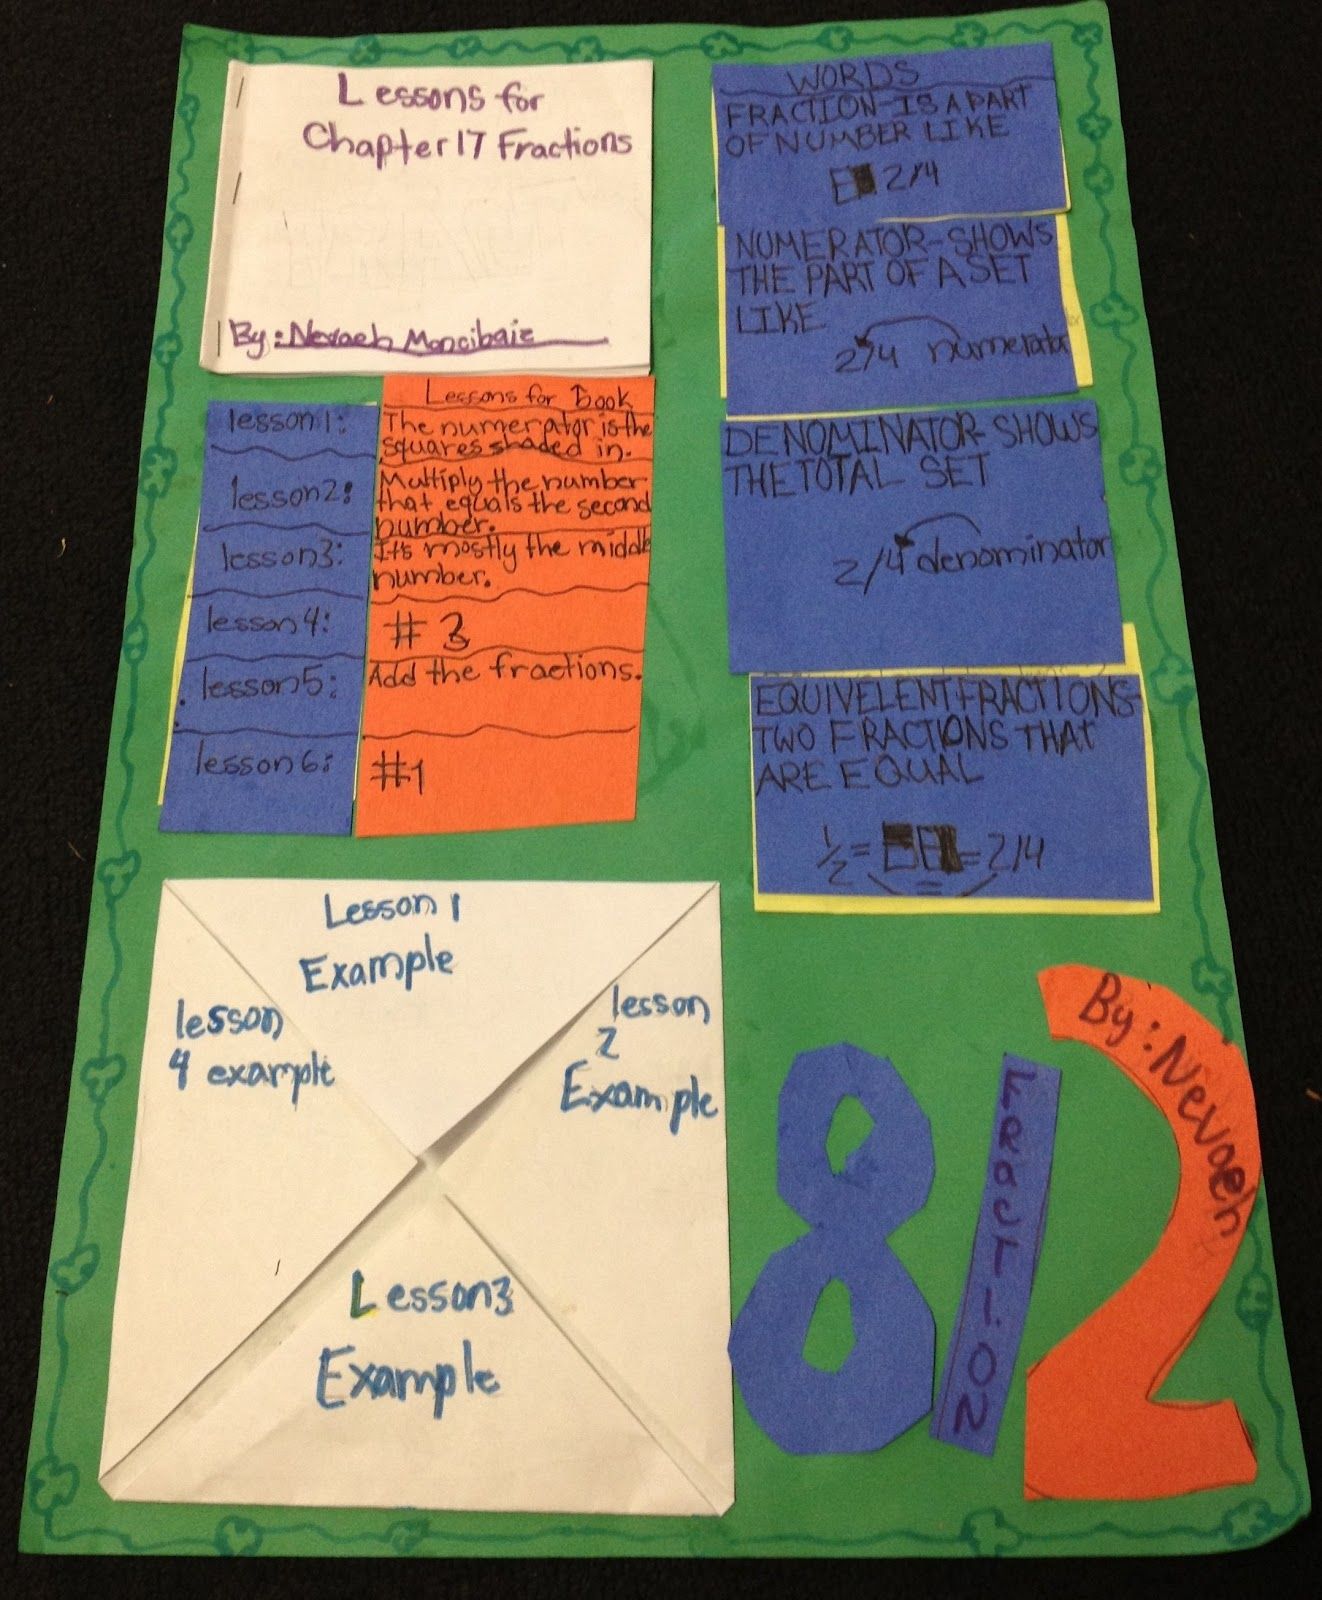 math projects Ideas for fun and engaging middle & high school math projects that focus on academic rigor and real world relevancy from 3rd grade to calculus.